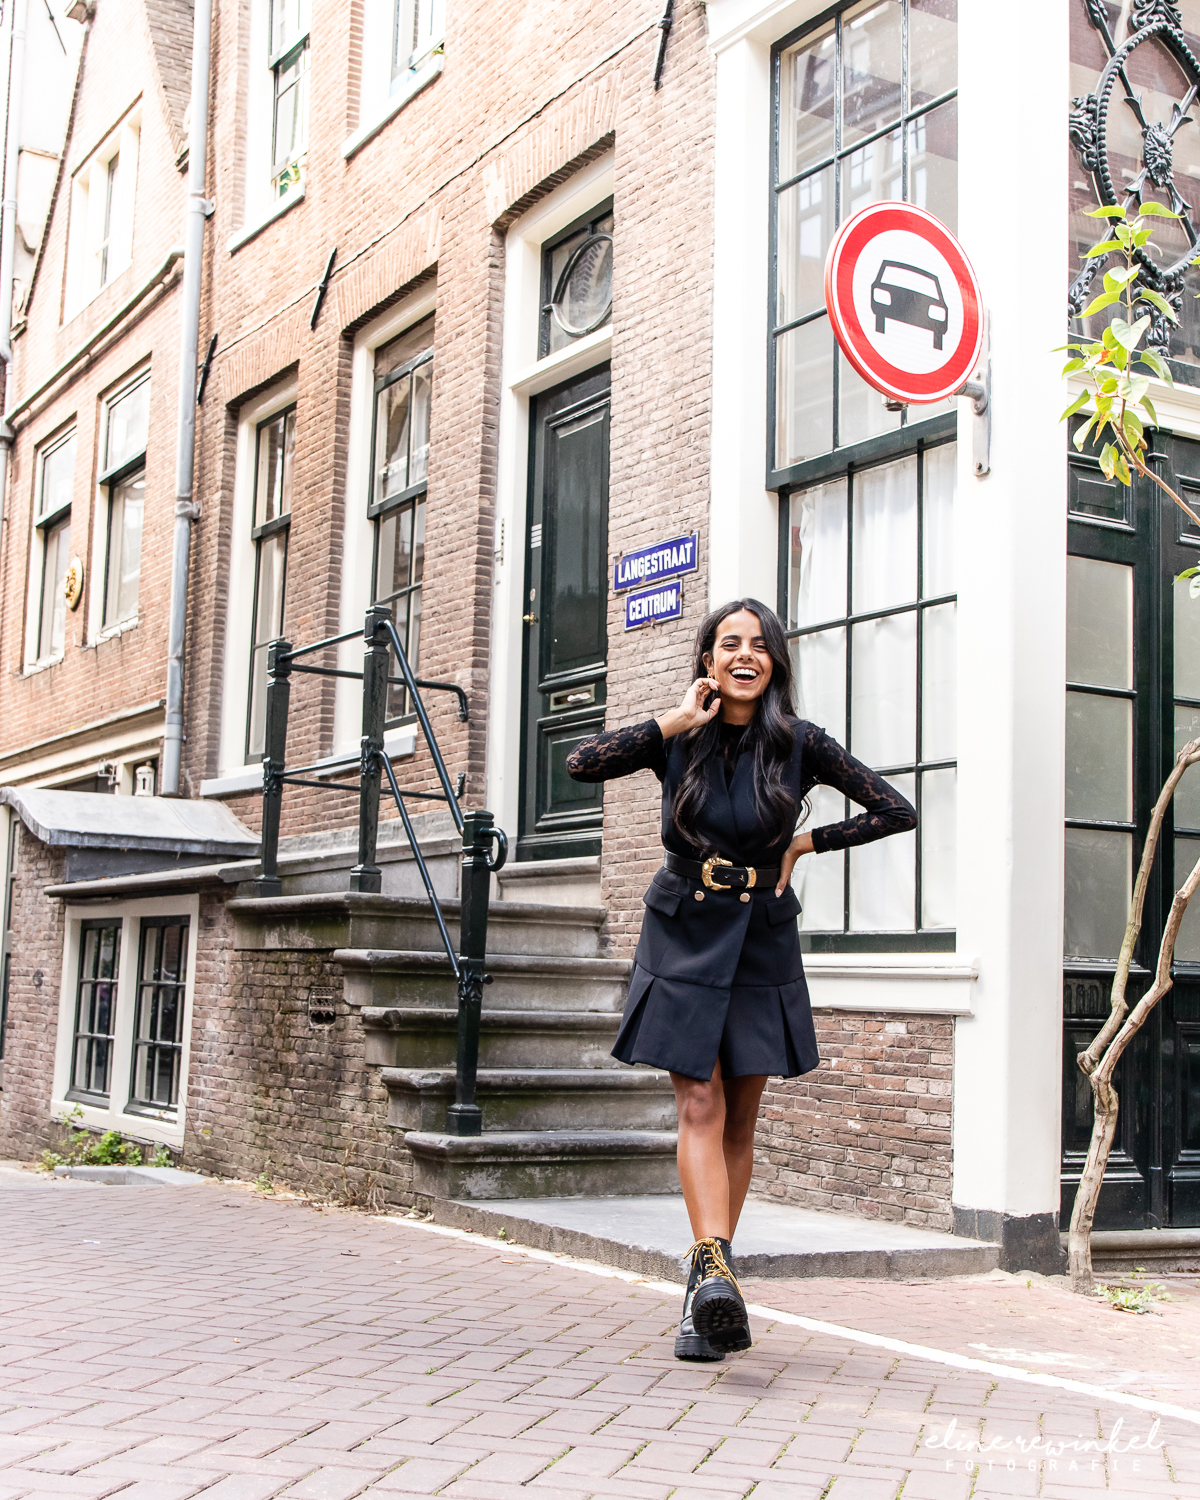 Streetstyle photos in Amsterdam